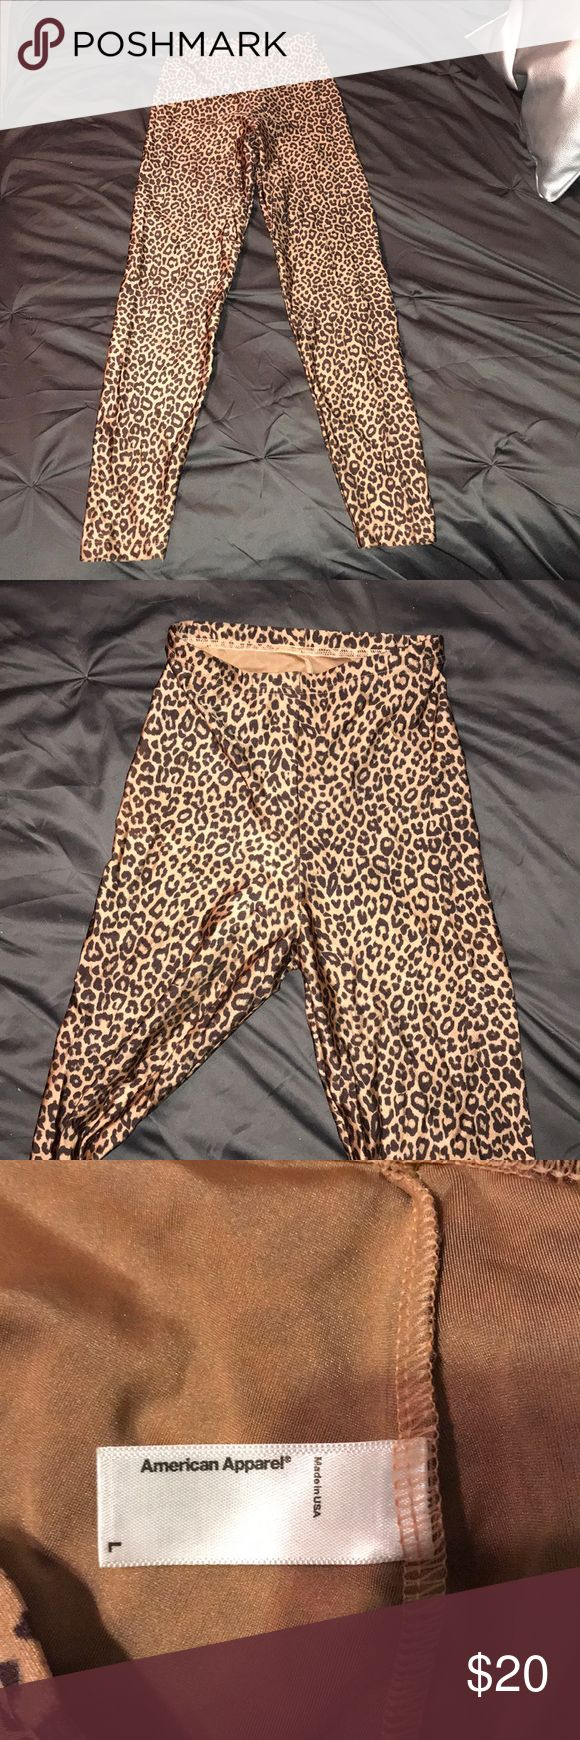 American Apparel cheetah tights Size large. Super stretchy tights American Apparel Pants Leggings